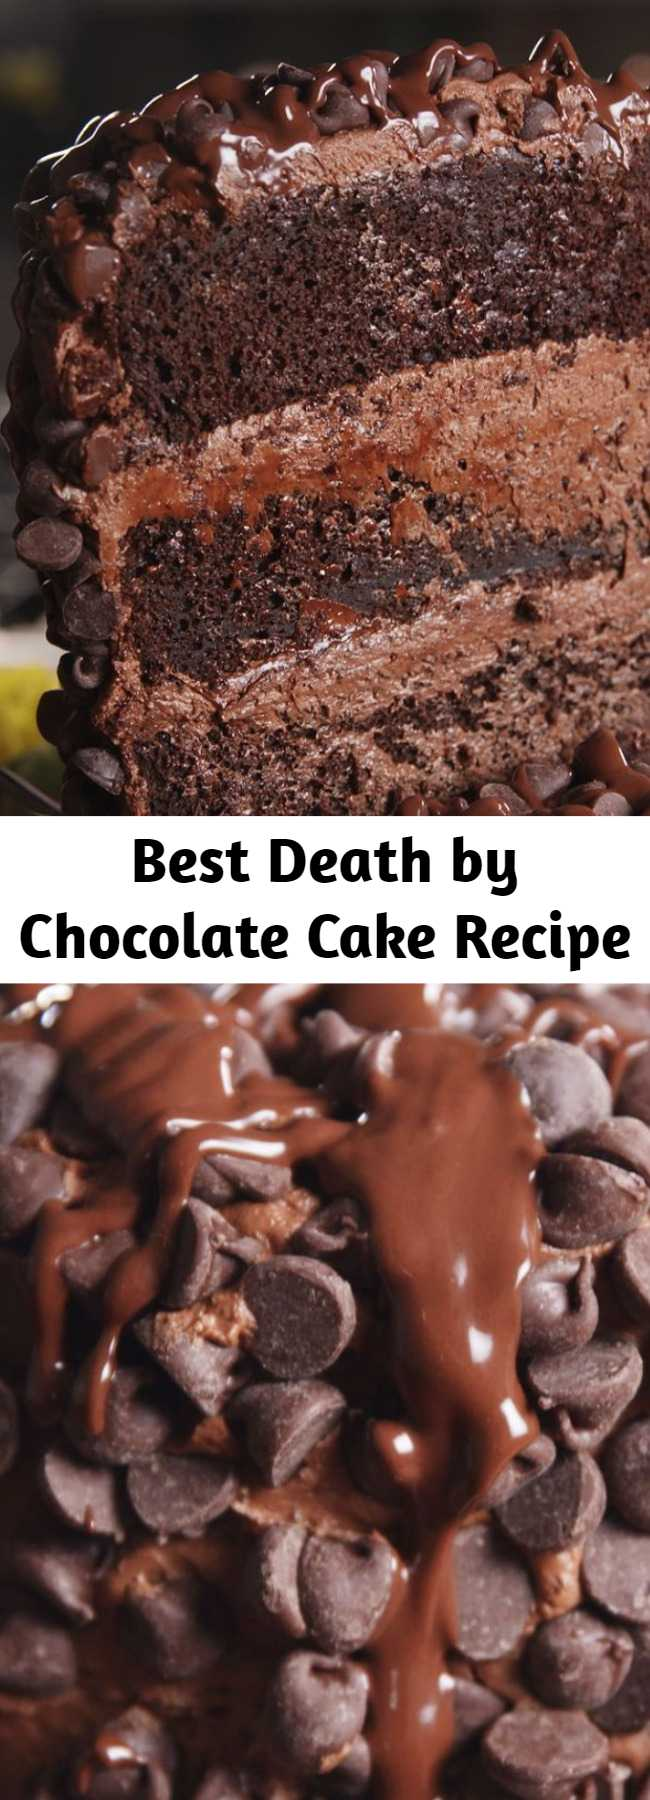 Best Death by Chocolate Cake Recipe - Death by chocolate cake is layers upon layers of chocolate and the ultimate chocolate dessert. The tallest and proudest cake on the block but there's no need to be intimidated. This cake is easy pull together and will be the greatest show (heart) stopper.